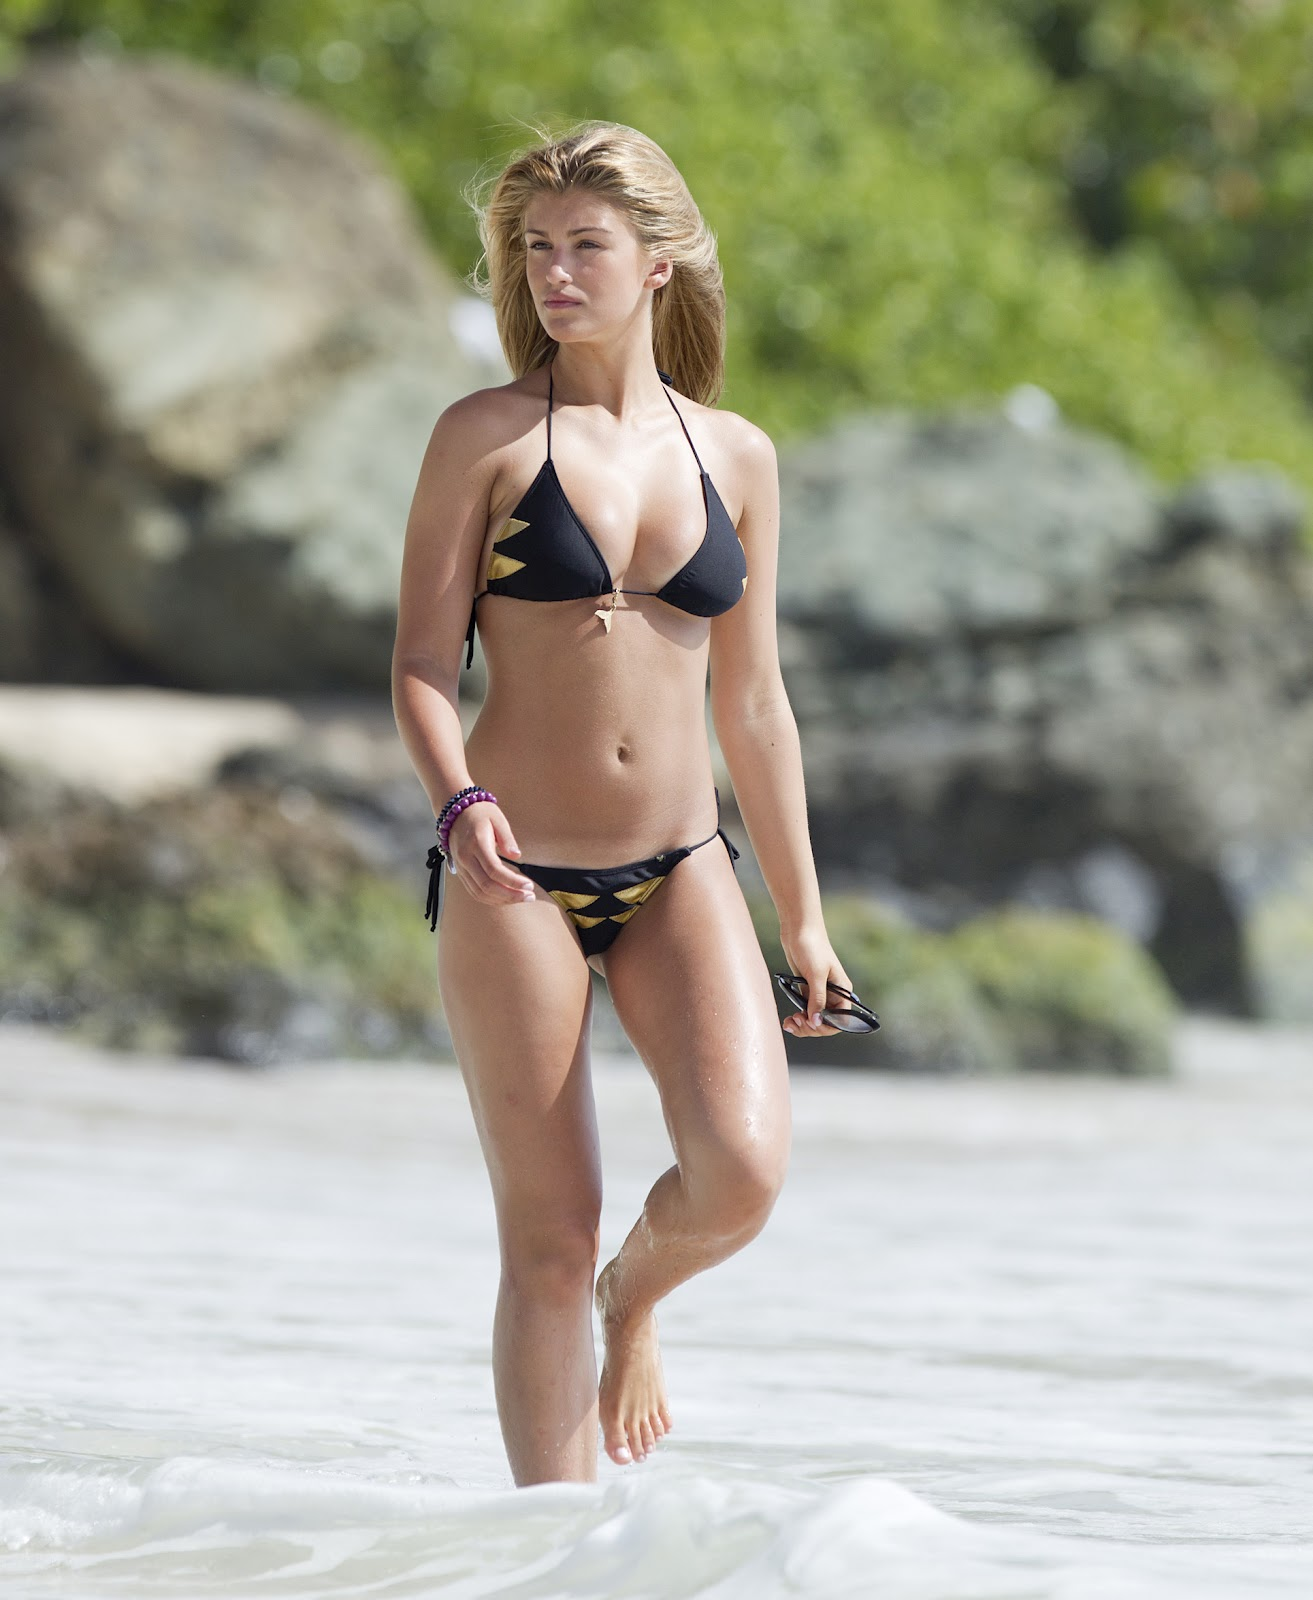 Willerton Amy Candid Bikini shots-The Perfect Bikni Body